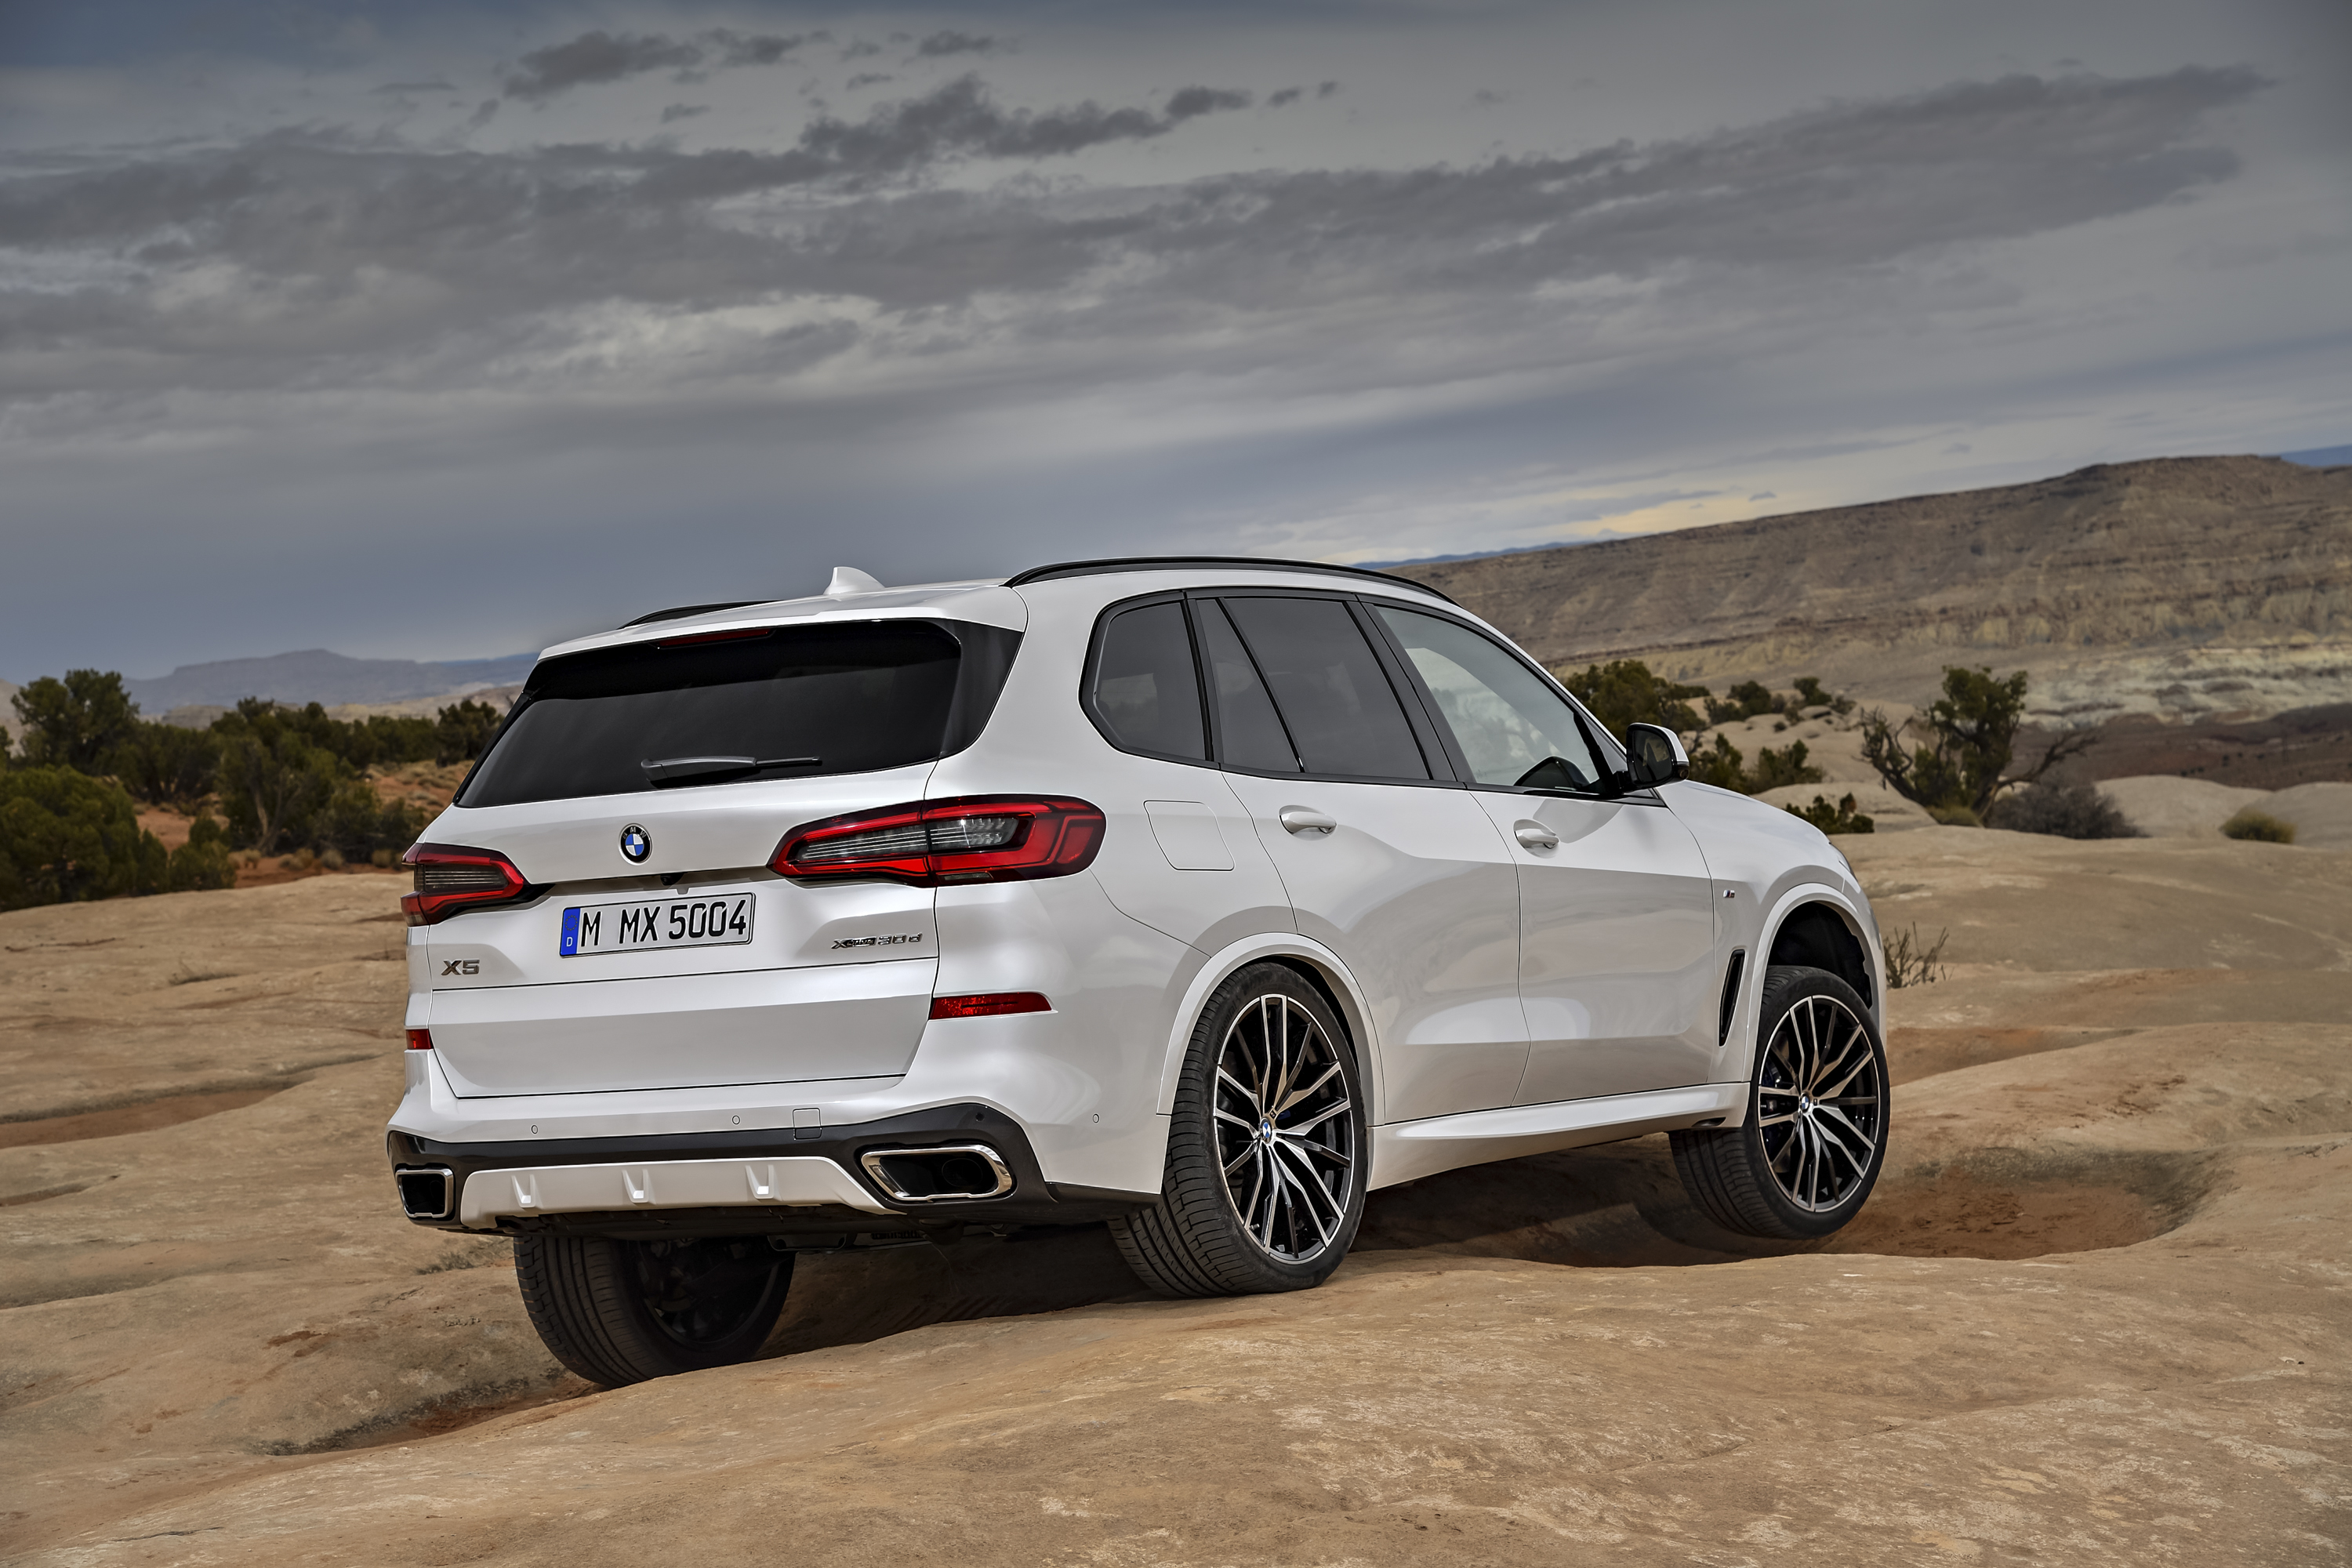 The 2019 Bmw X5 Grew In Almost Every Way But Doesn T Deliver Where